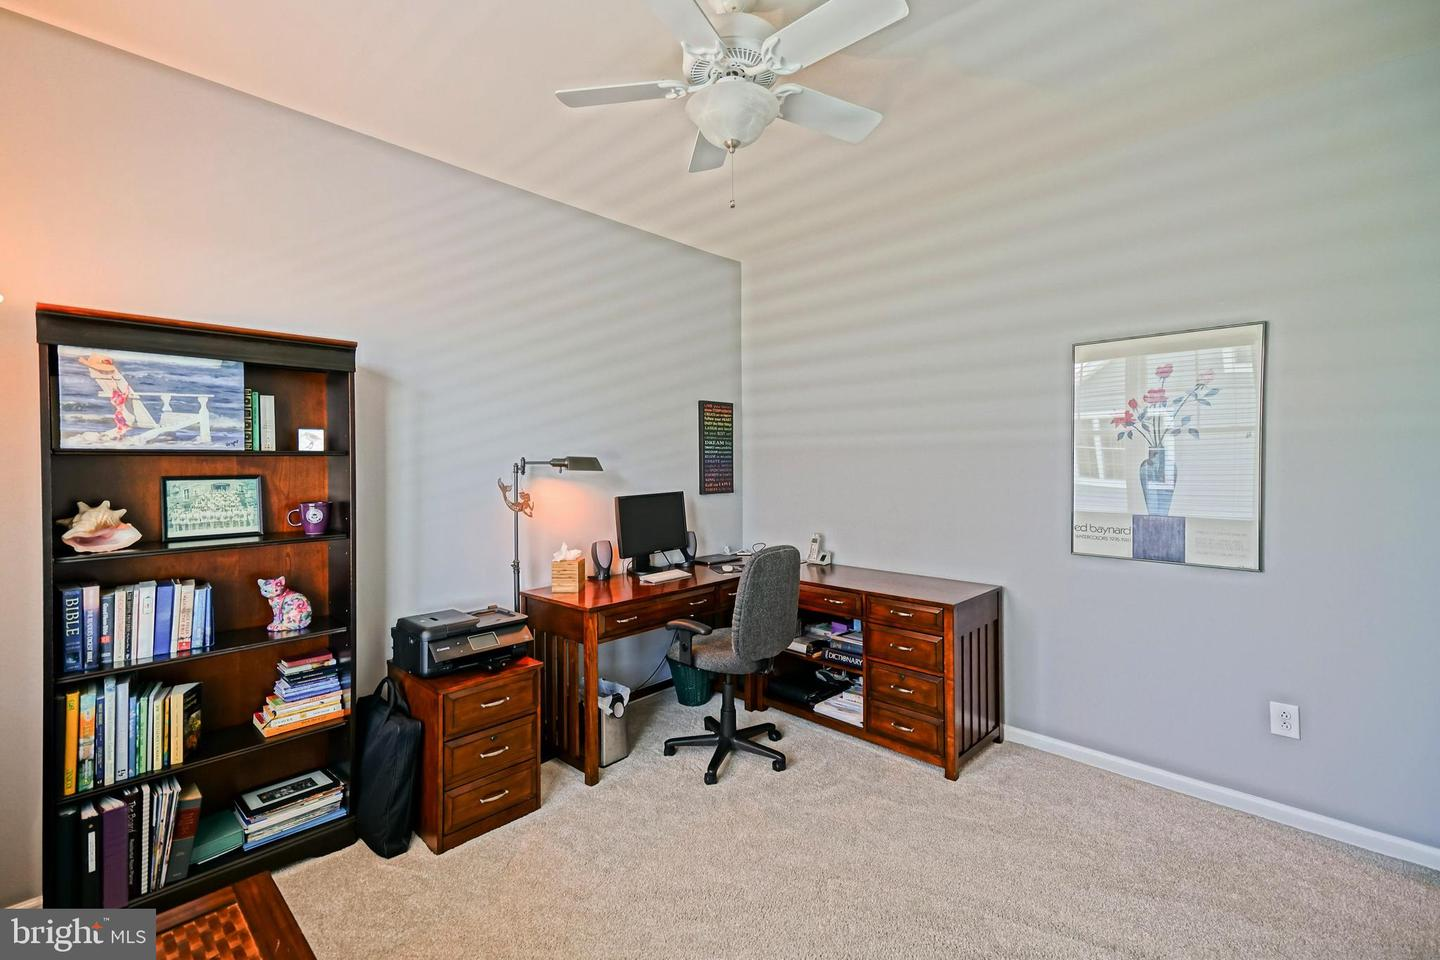 DESU139128-301667382748-2019-08-05-10-43-56 35222 Overfalls Dr N | Lewes, DE Real Estate For Sale | MLS# Desu139128  - Lee Ann Group